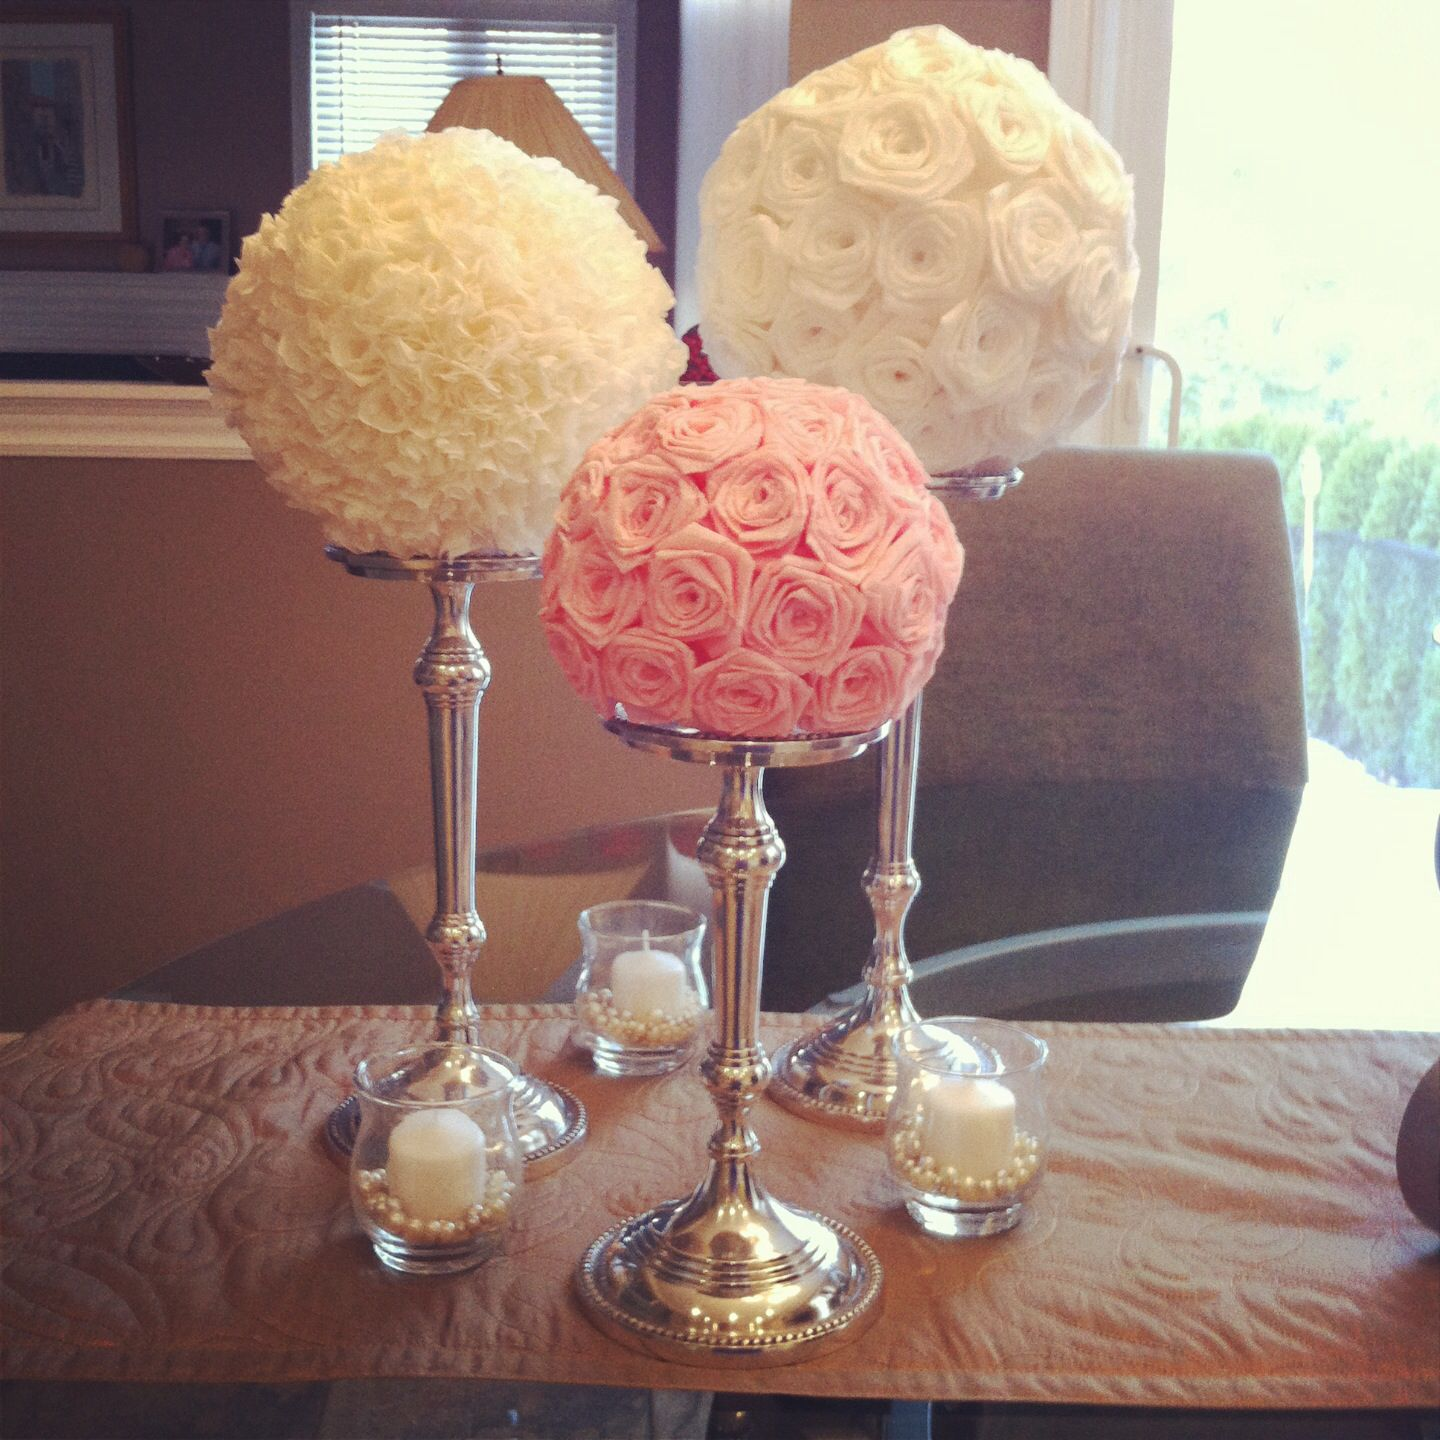 diy beach theme wedding centerpieces%0A These are my DIY paper flower wedding centerpieces  oh now this would take  some time but veryyyyy cute and cheap  made with paper